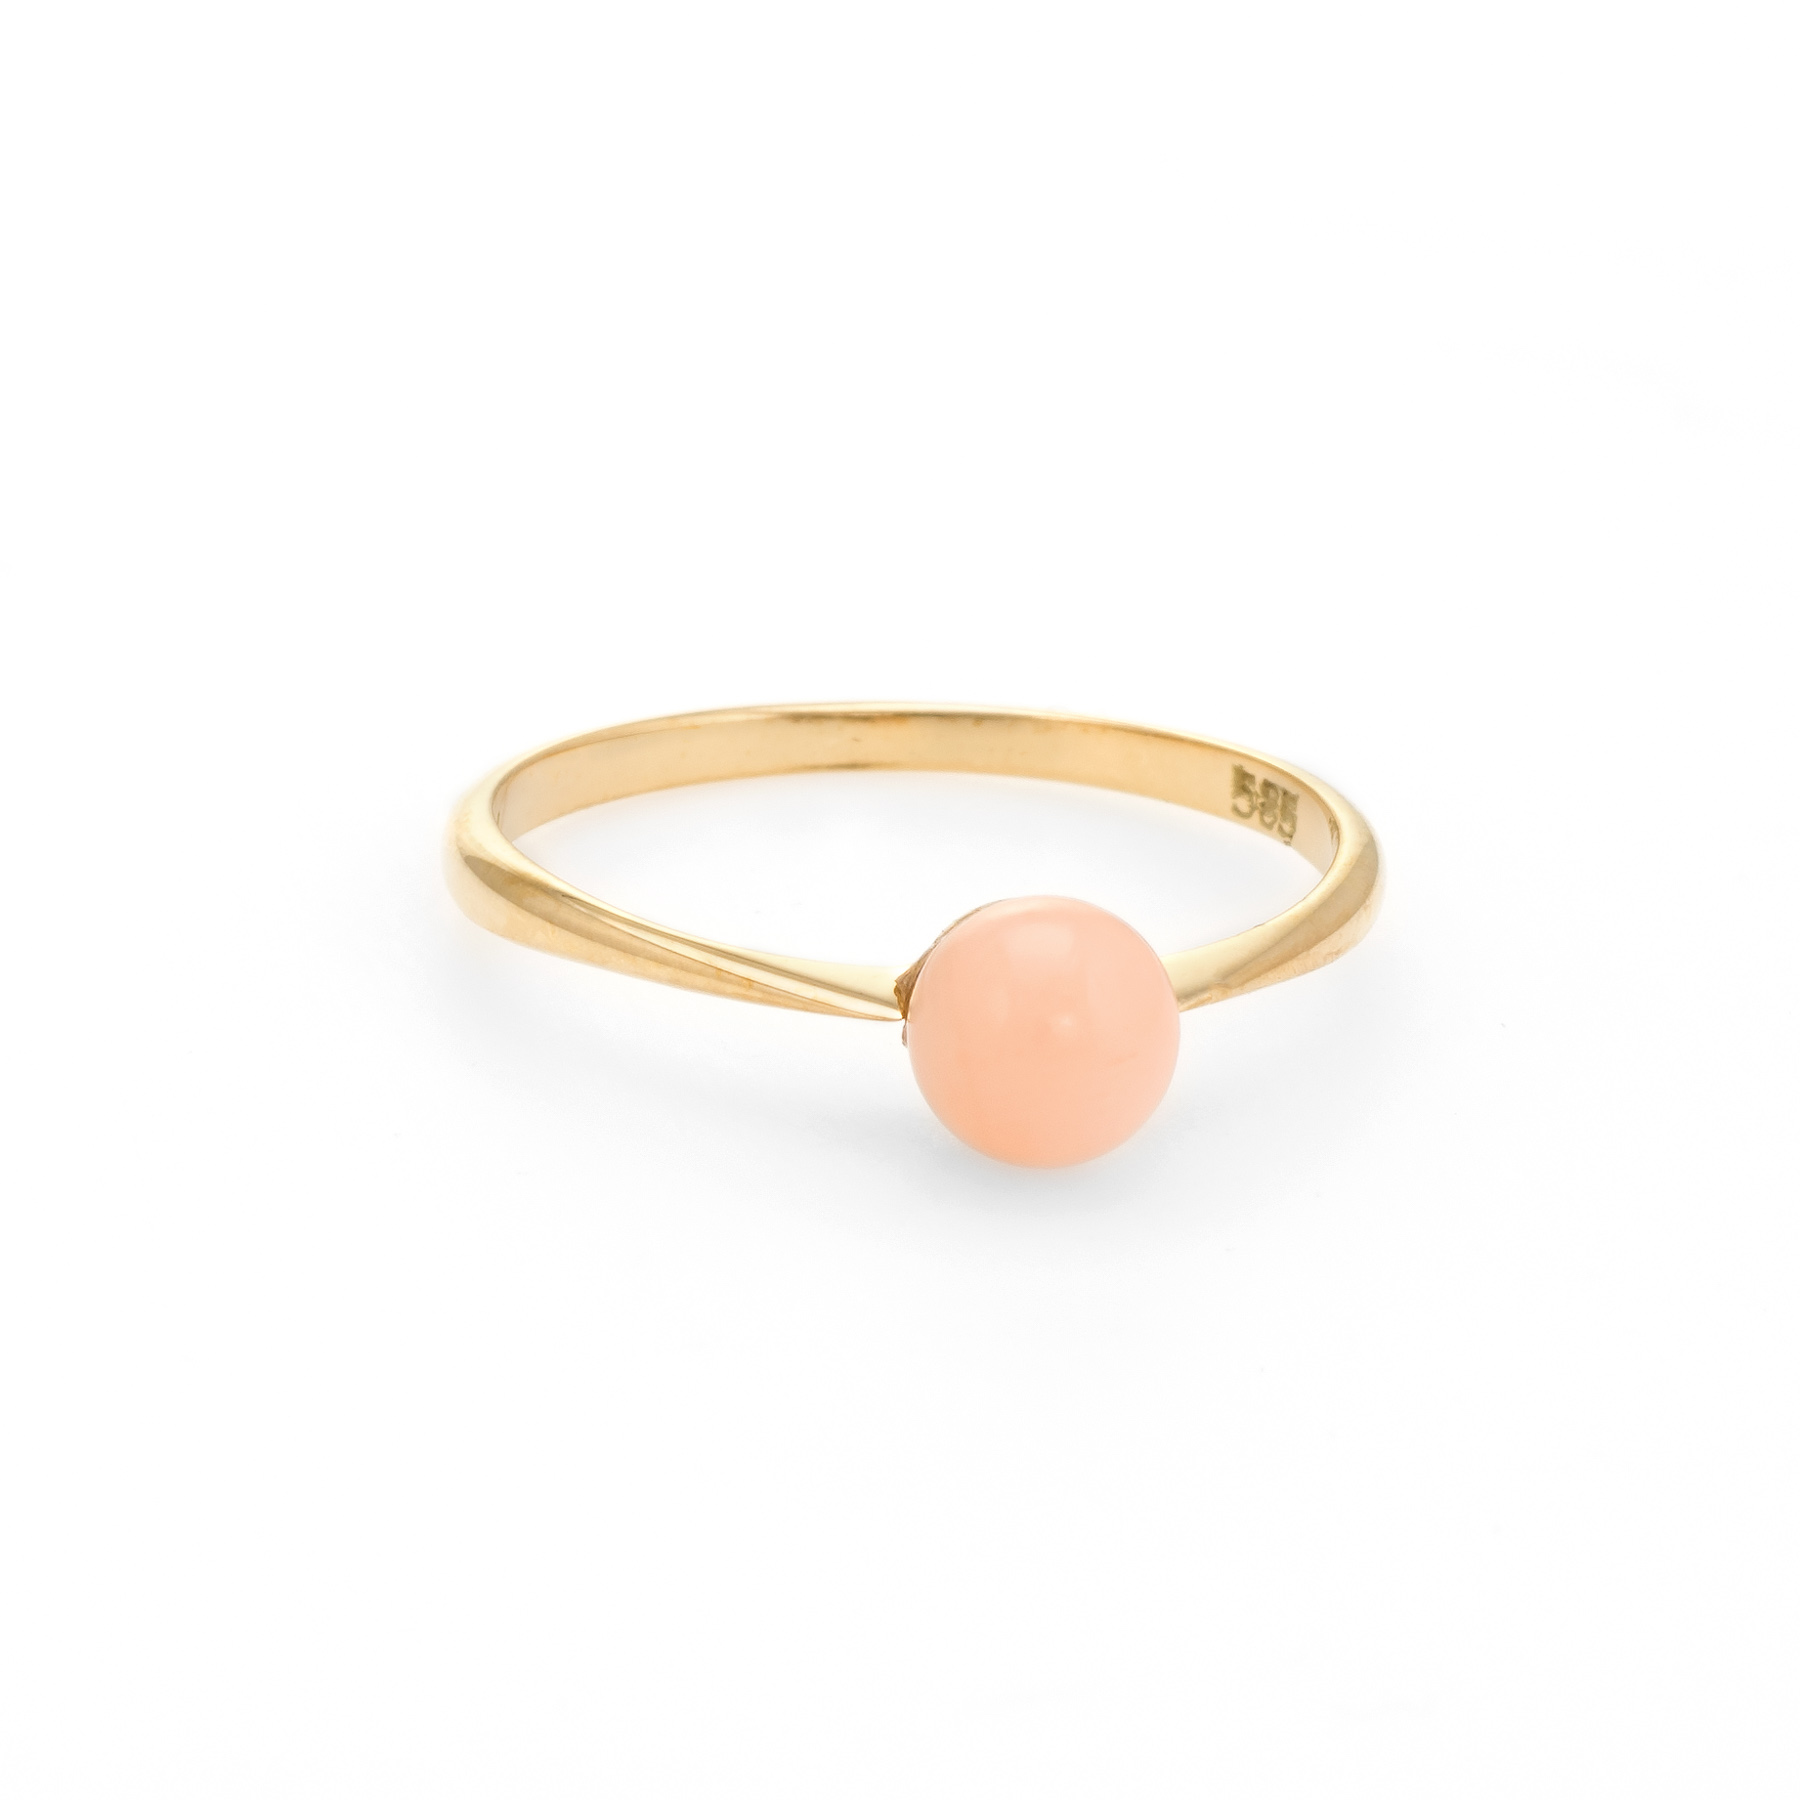 ddbf56765 Details about Vintage Angel Skin Coral Orb Ring 14k Yellow Gold Stacking  Estate Jewelry Sz 5.5